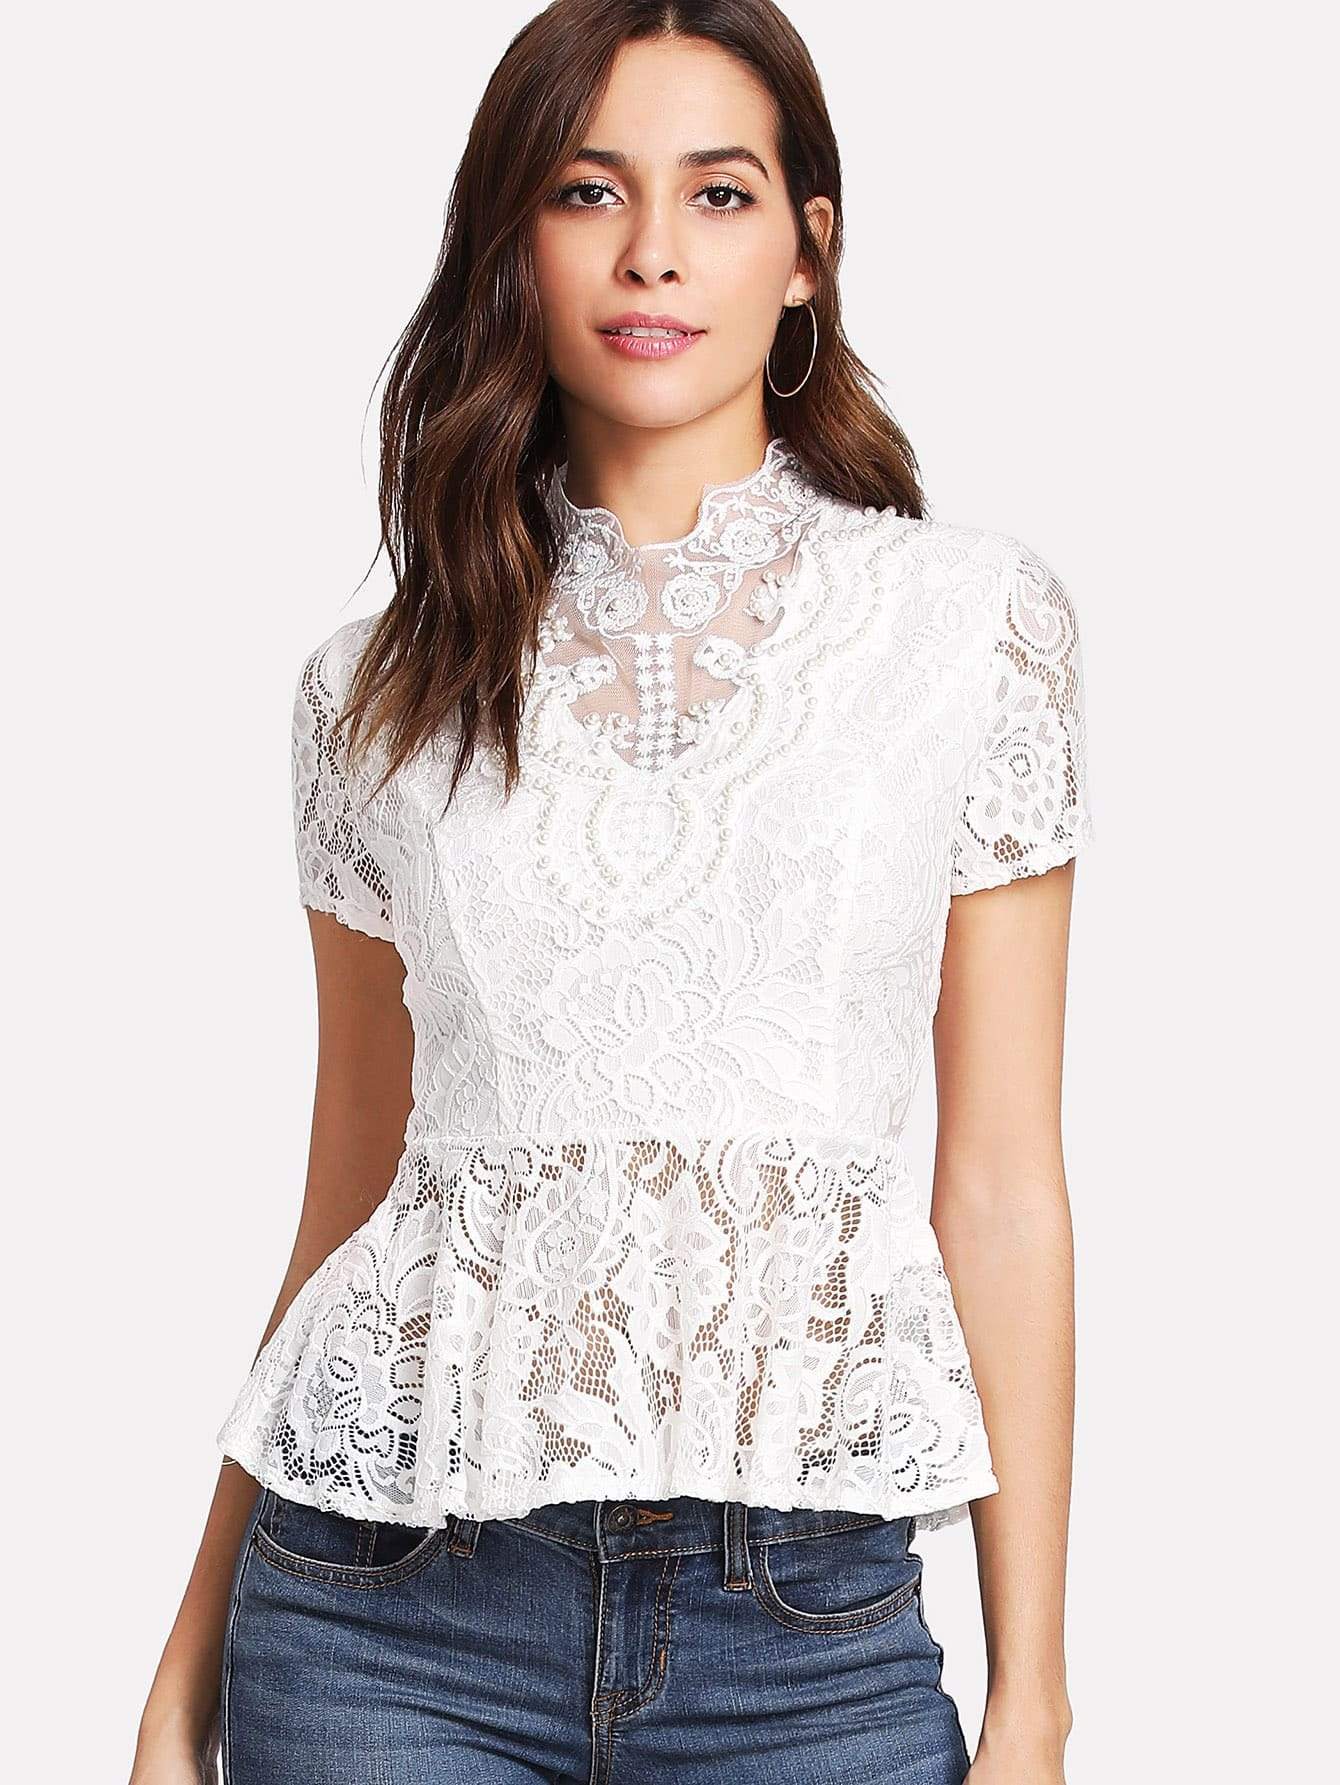 Pearl Beading Lace Peplum Top flounce sleeve faux pearl beading lace top